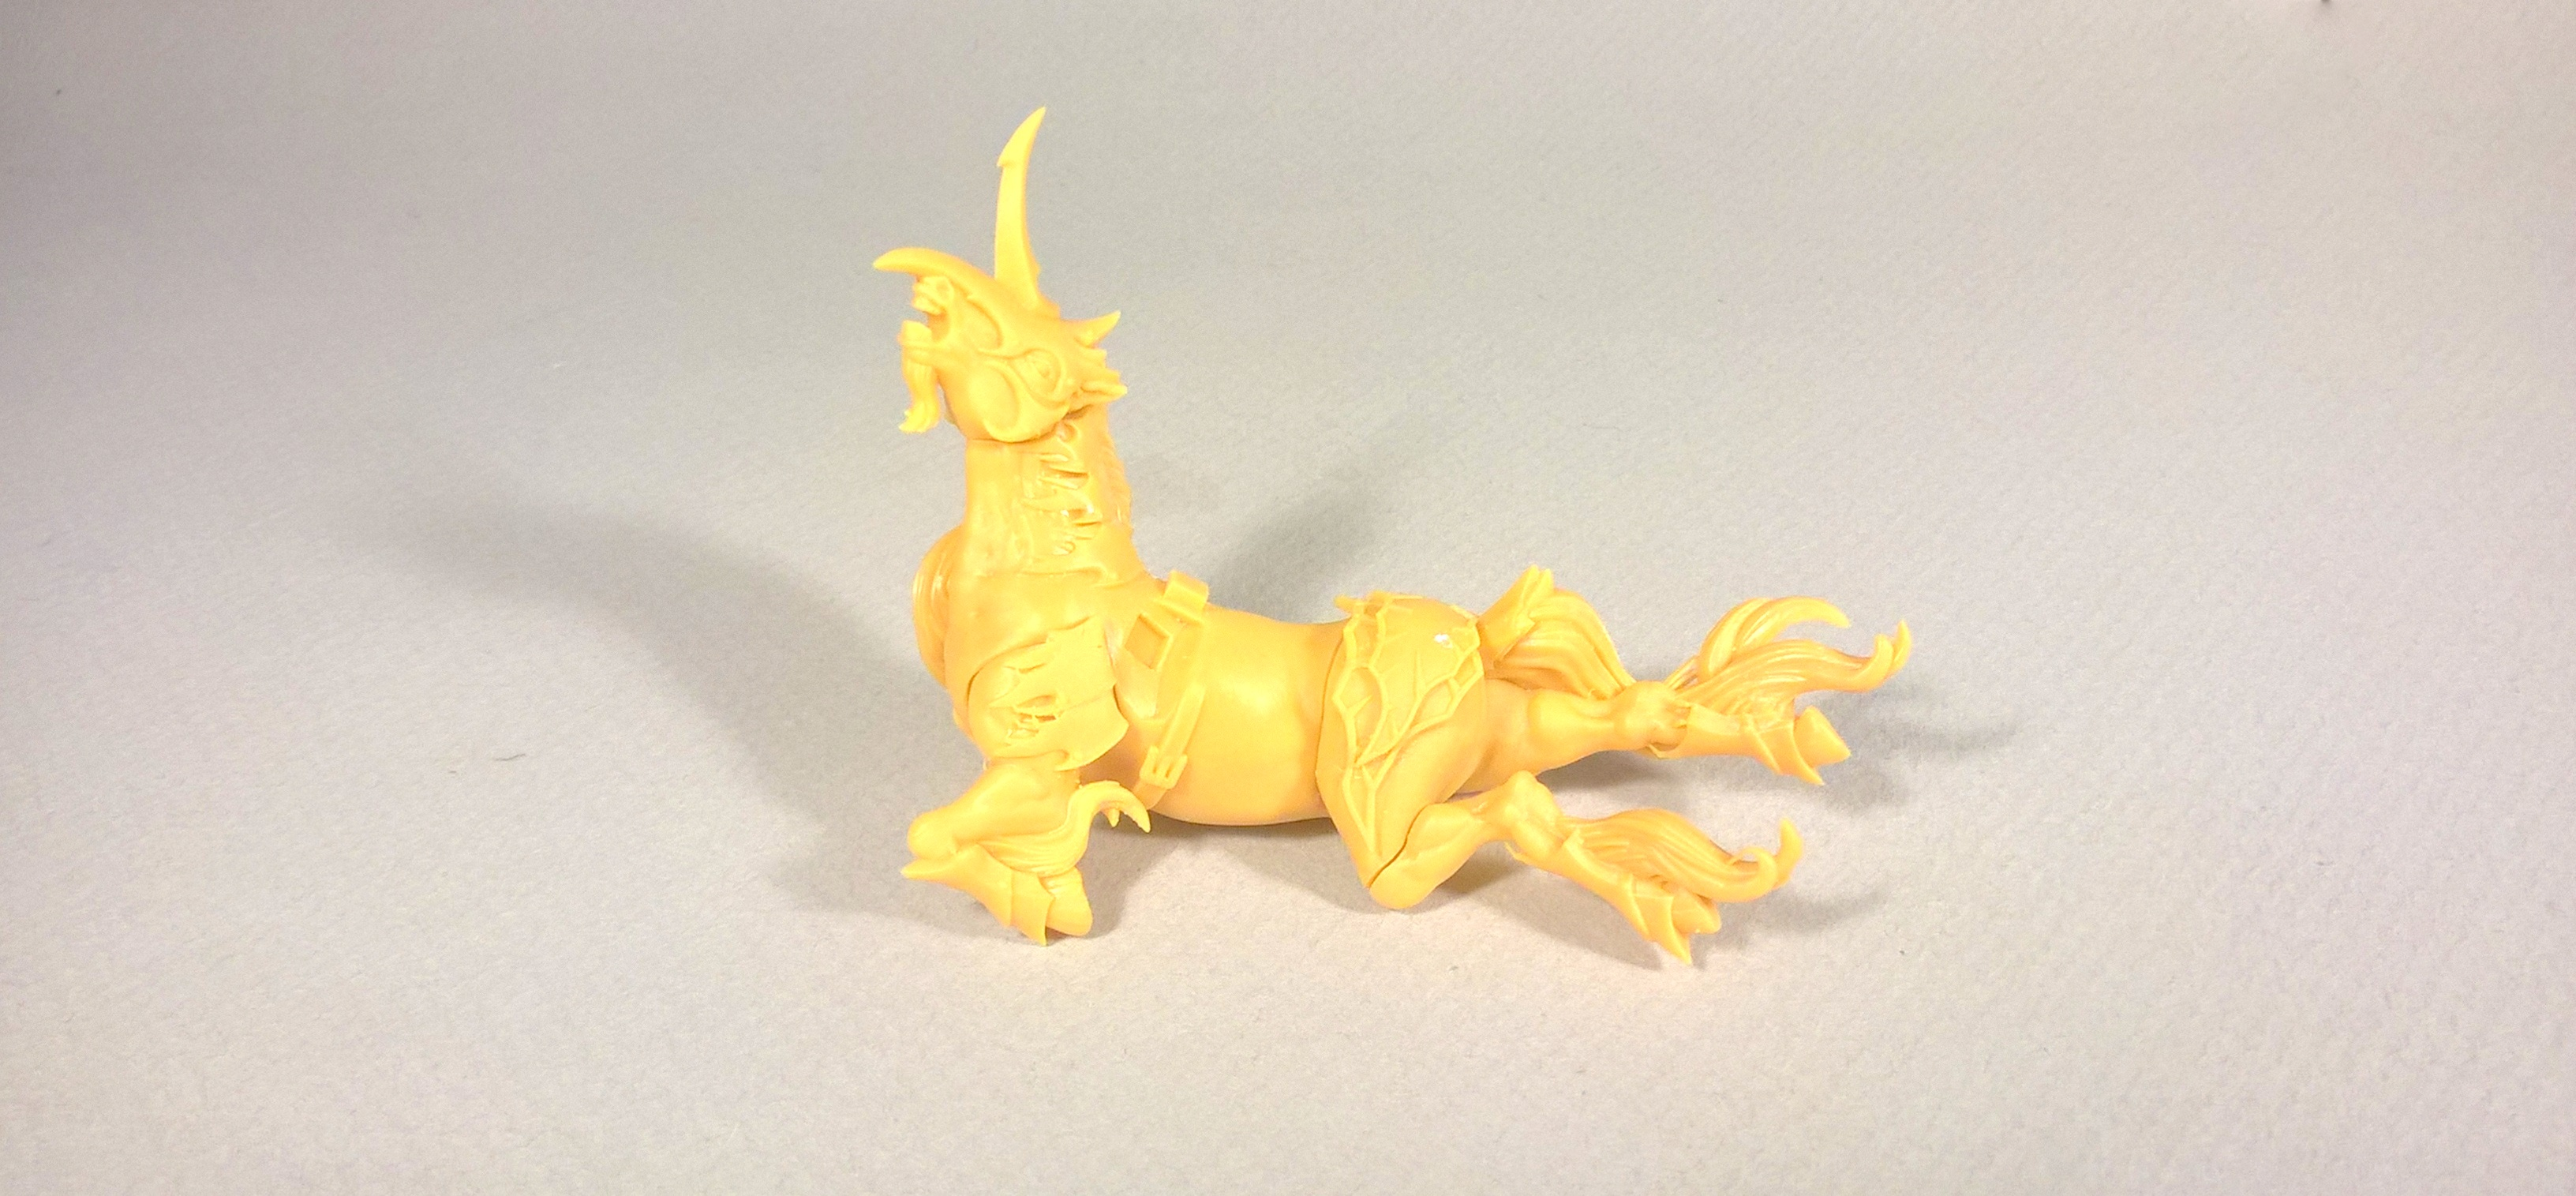 Model Elves and Centaurs Achieve New Levels of Detail with 3D Printing